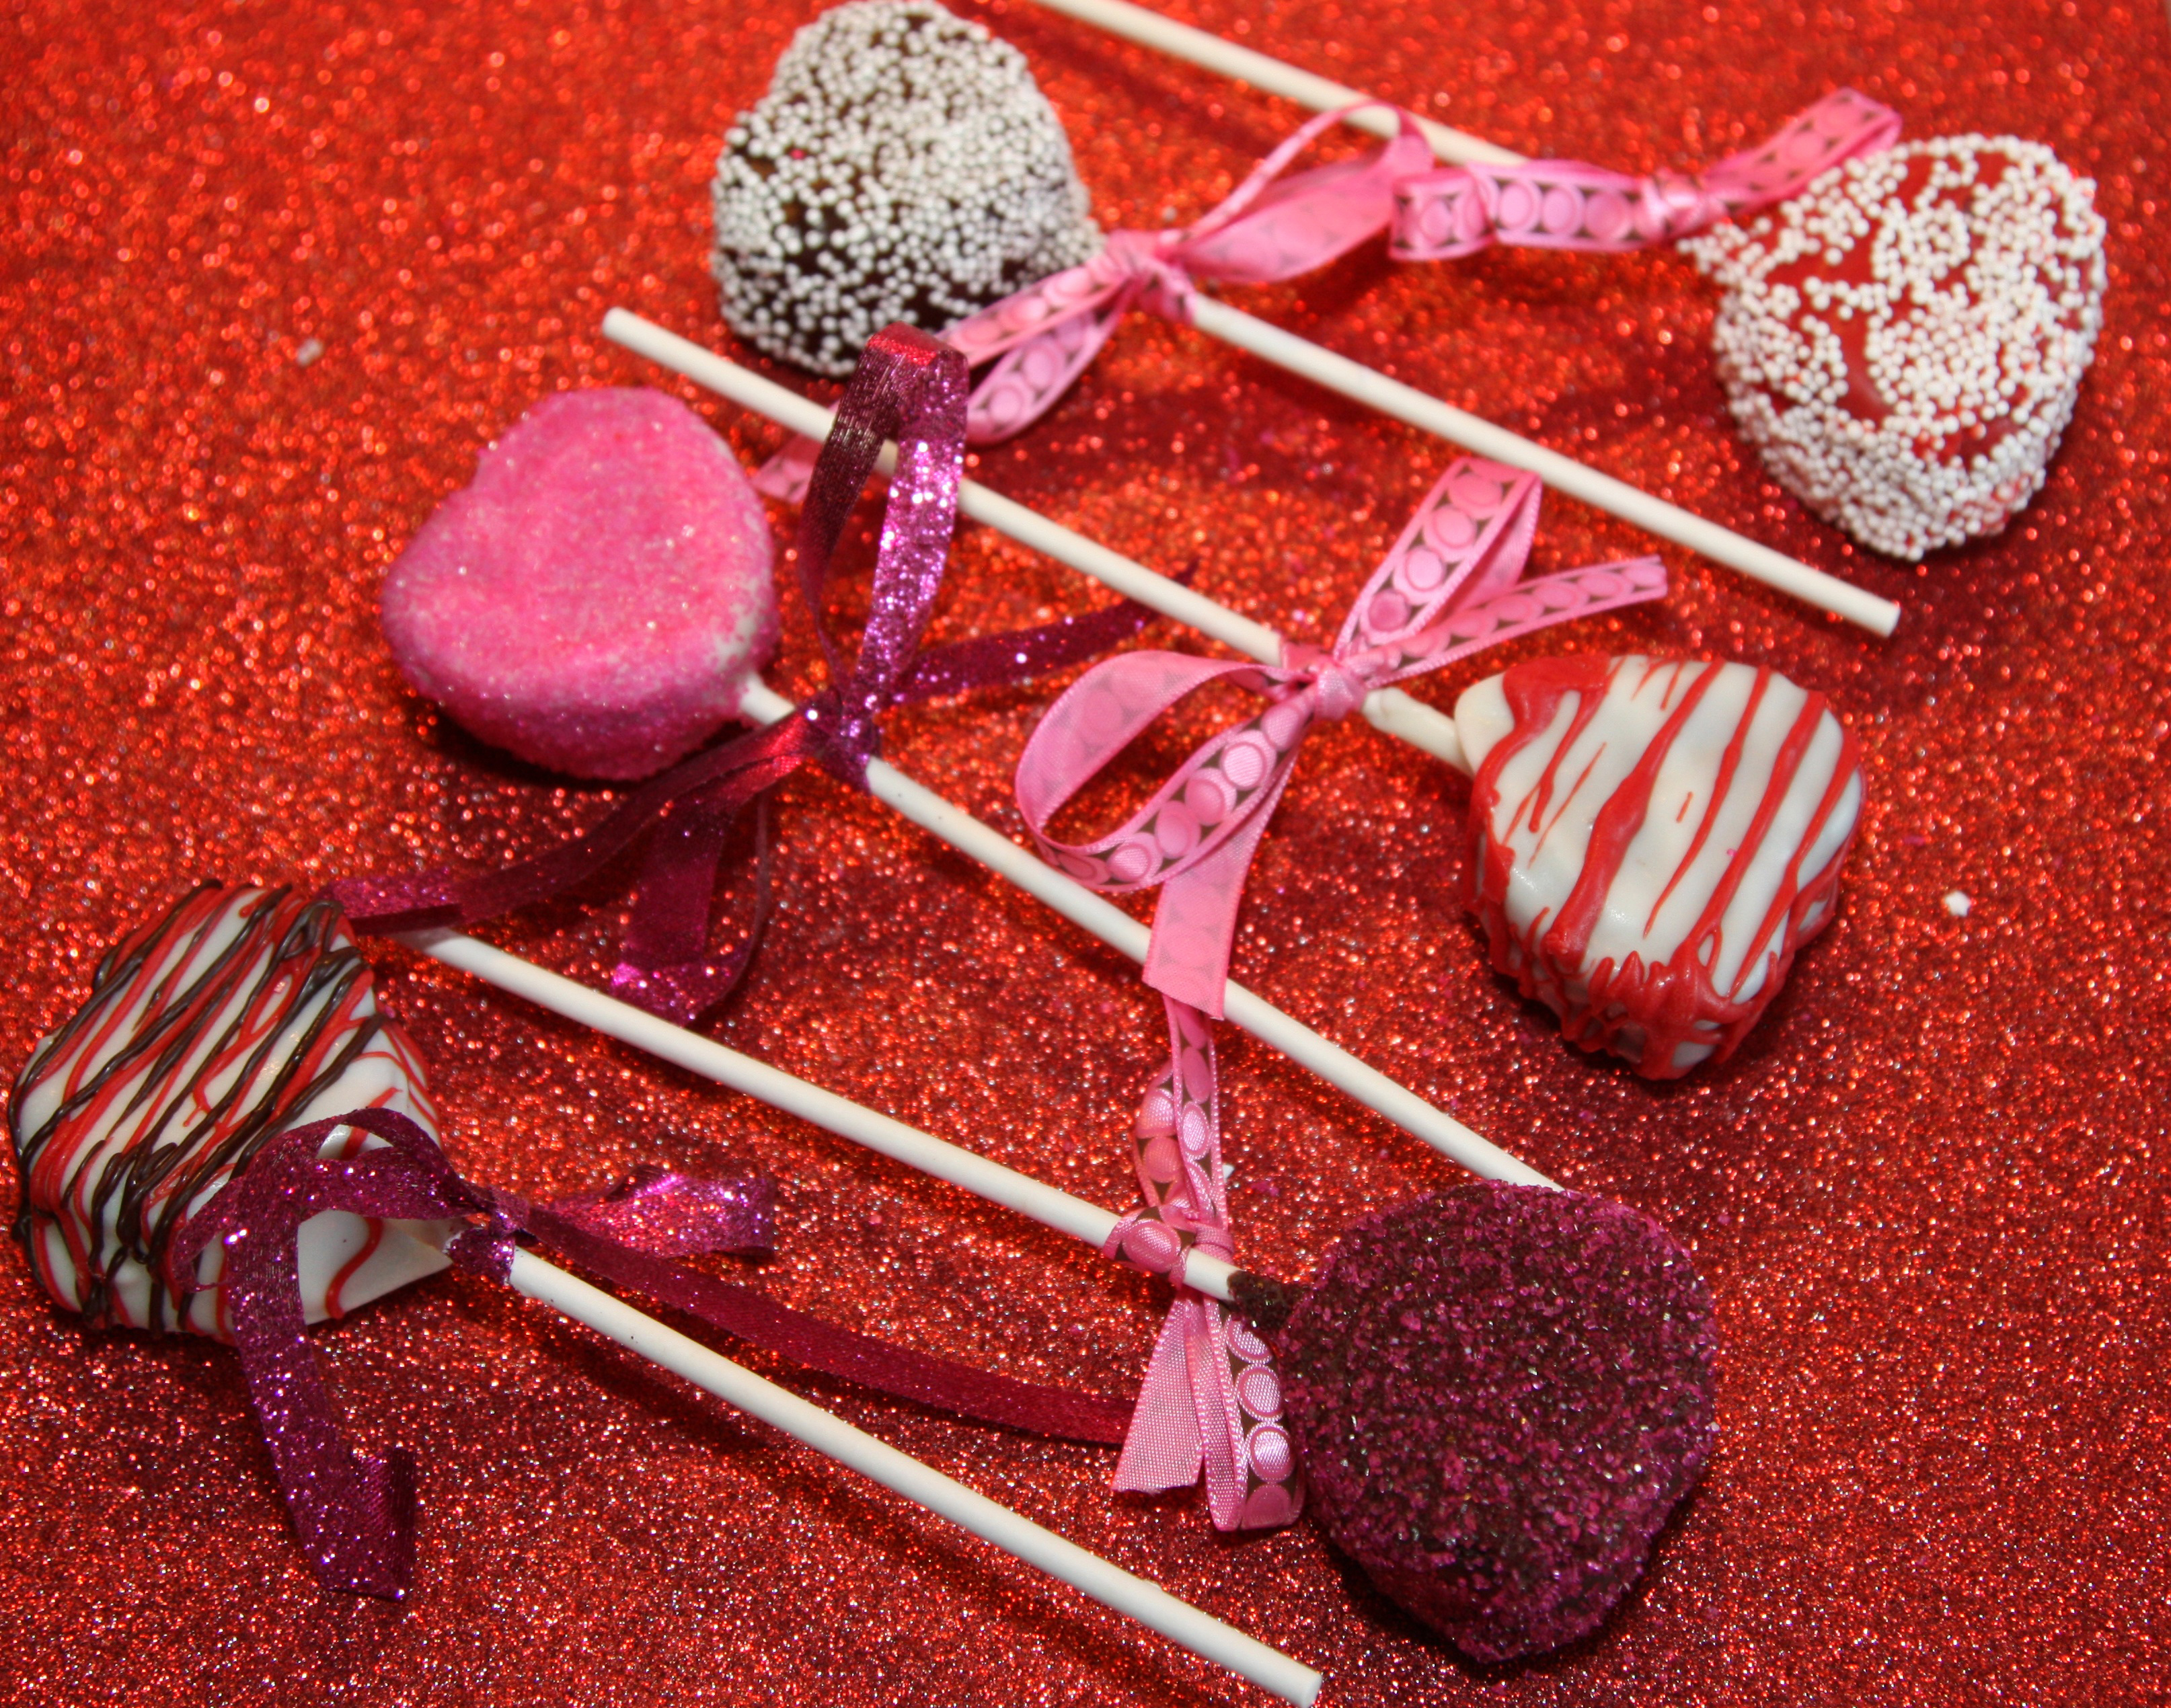 Candy,red,heart,sweet